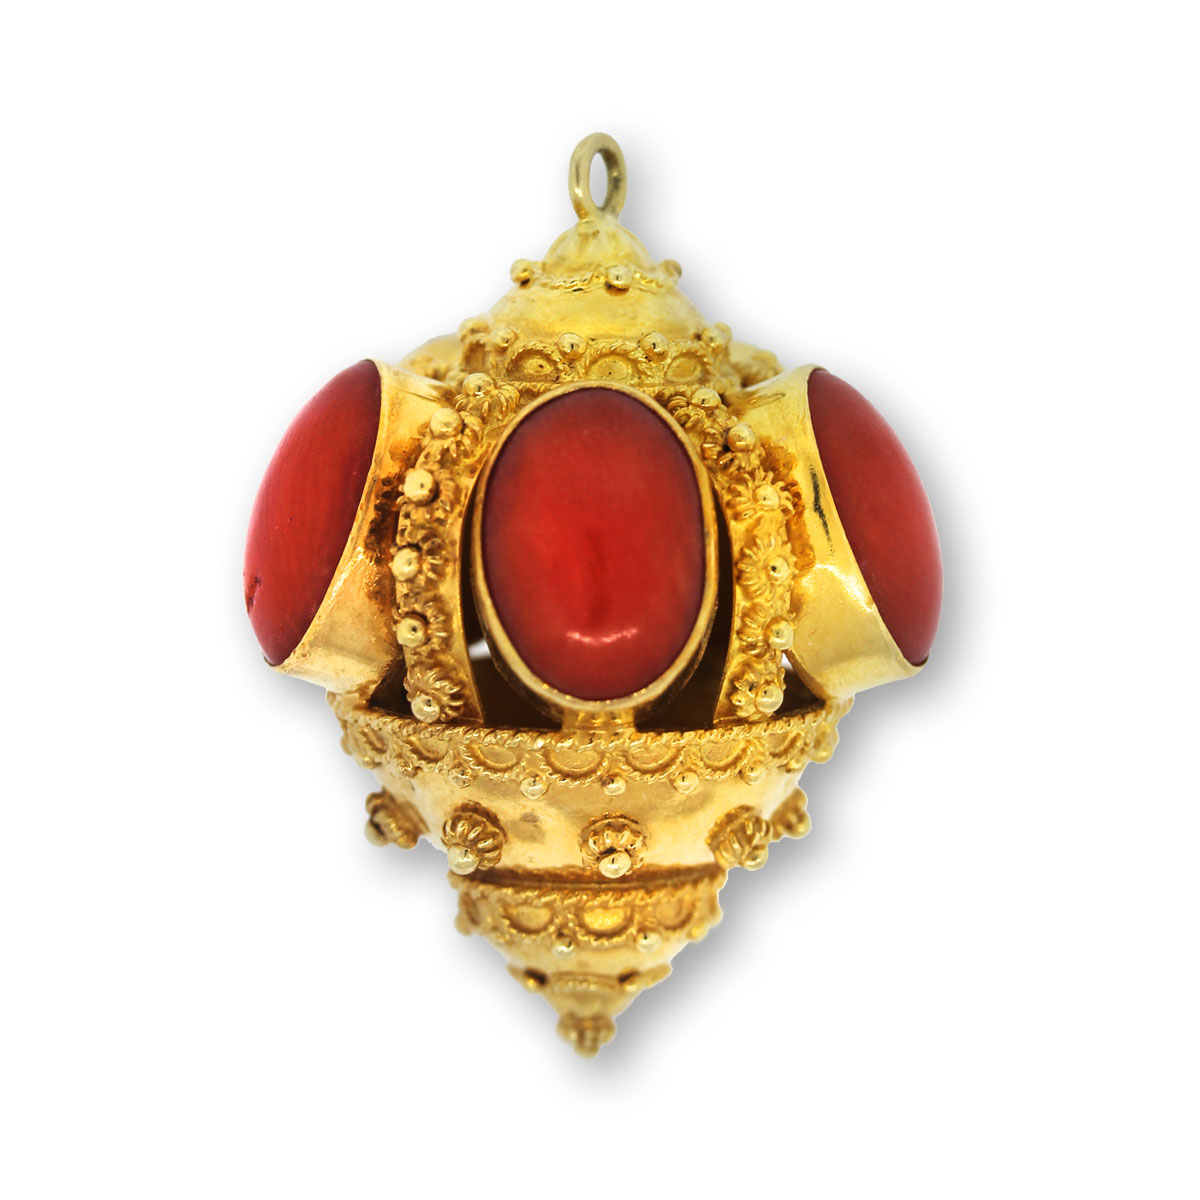 Coral and onyx necklace in 9kt yellow gold and silver with a flower vase shaped pendant composed of flowers in onyx and coral, there are some rubies, blue sapphires and emeralds that Gold Diamond Coral .